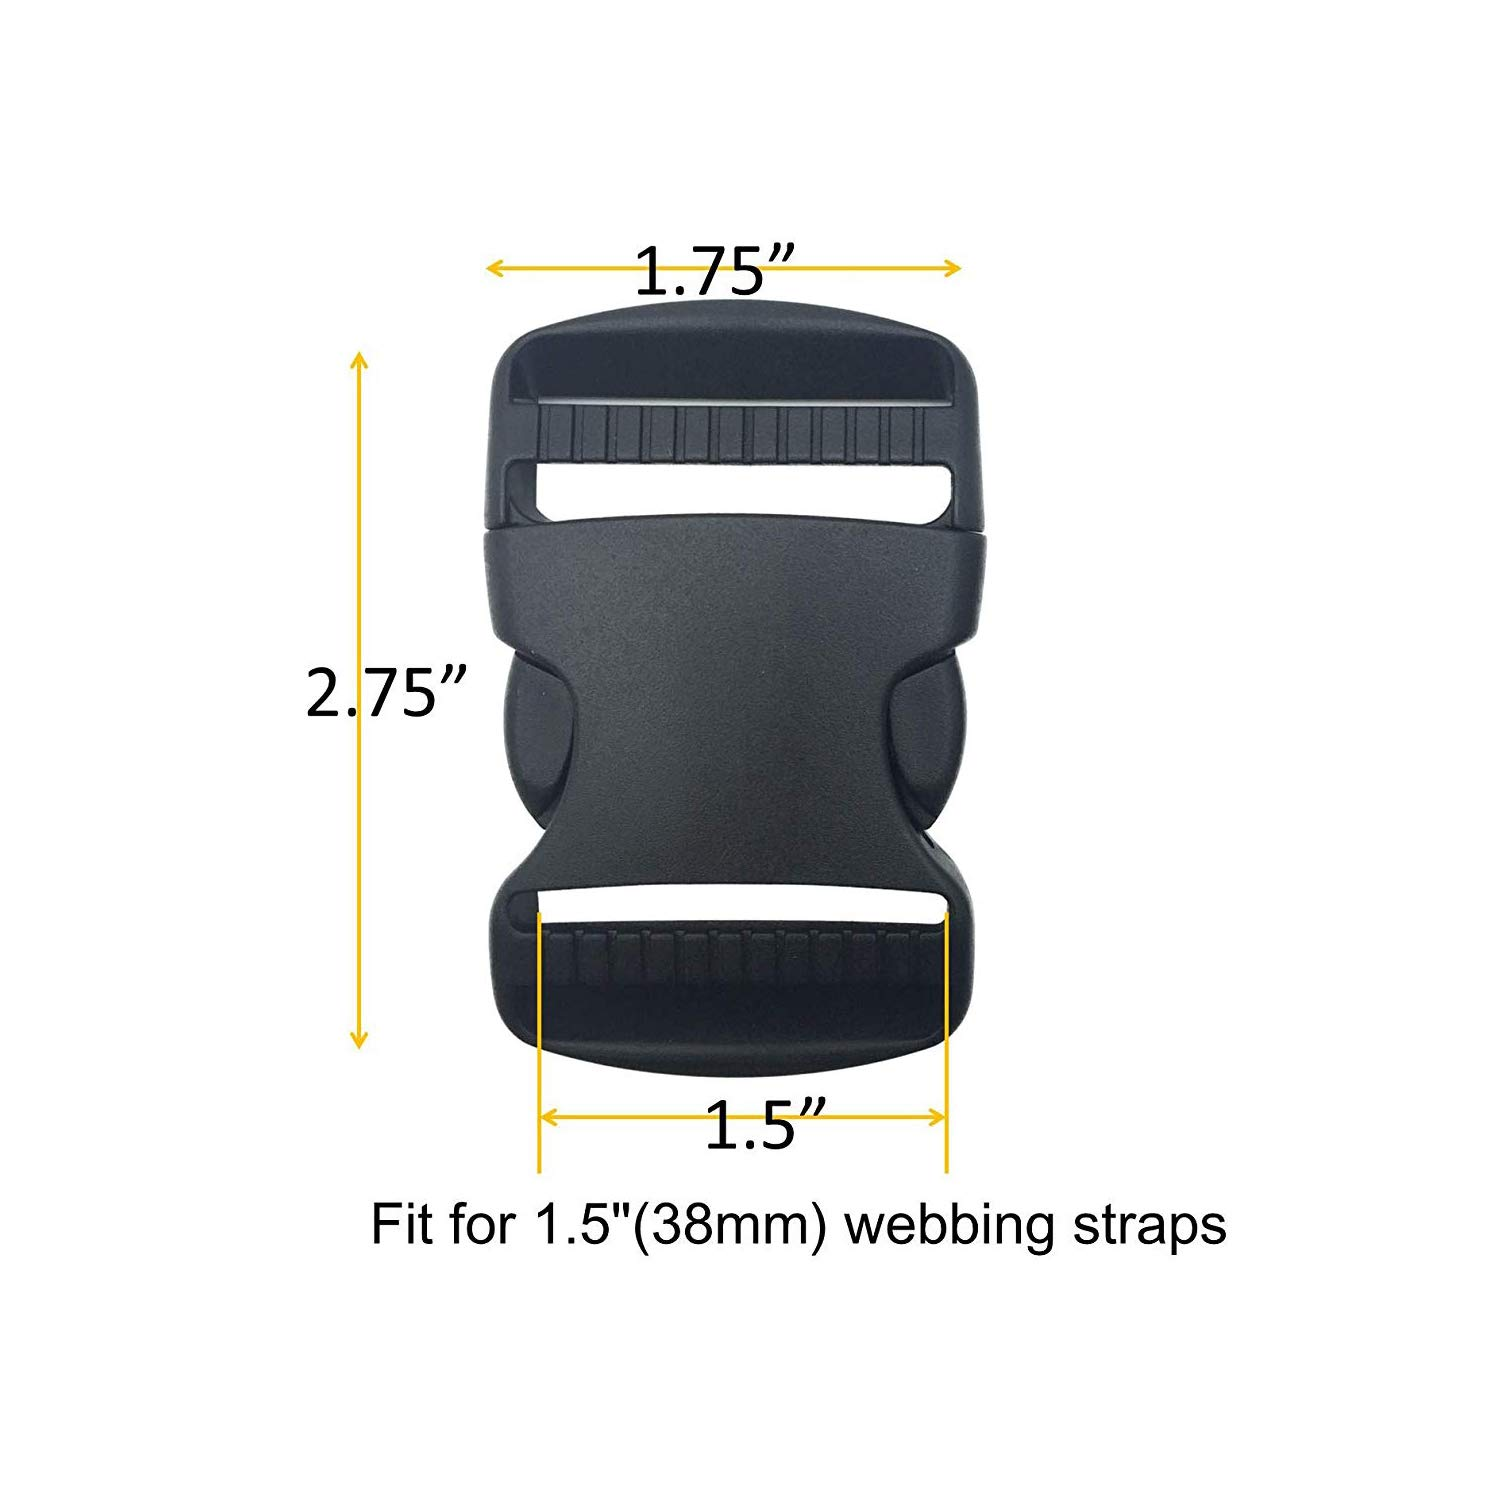 Luckycivia 30 Pack 1.5 Inch Flat Side Quick Release Plastic Buckles and Tri-Glide Slides Adjustment Clips Flat Heavy Duty Dual Adjustable Buckles for Luggage Straps Pet Collar Backpack Repairing